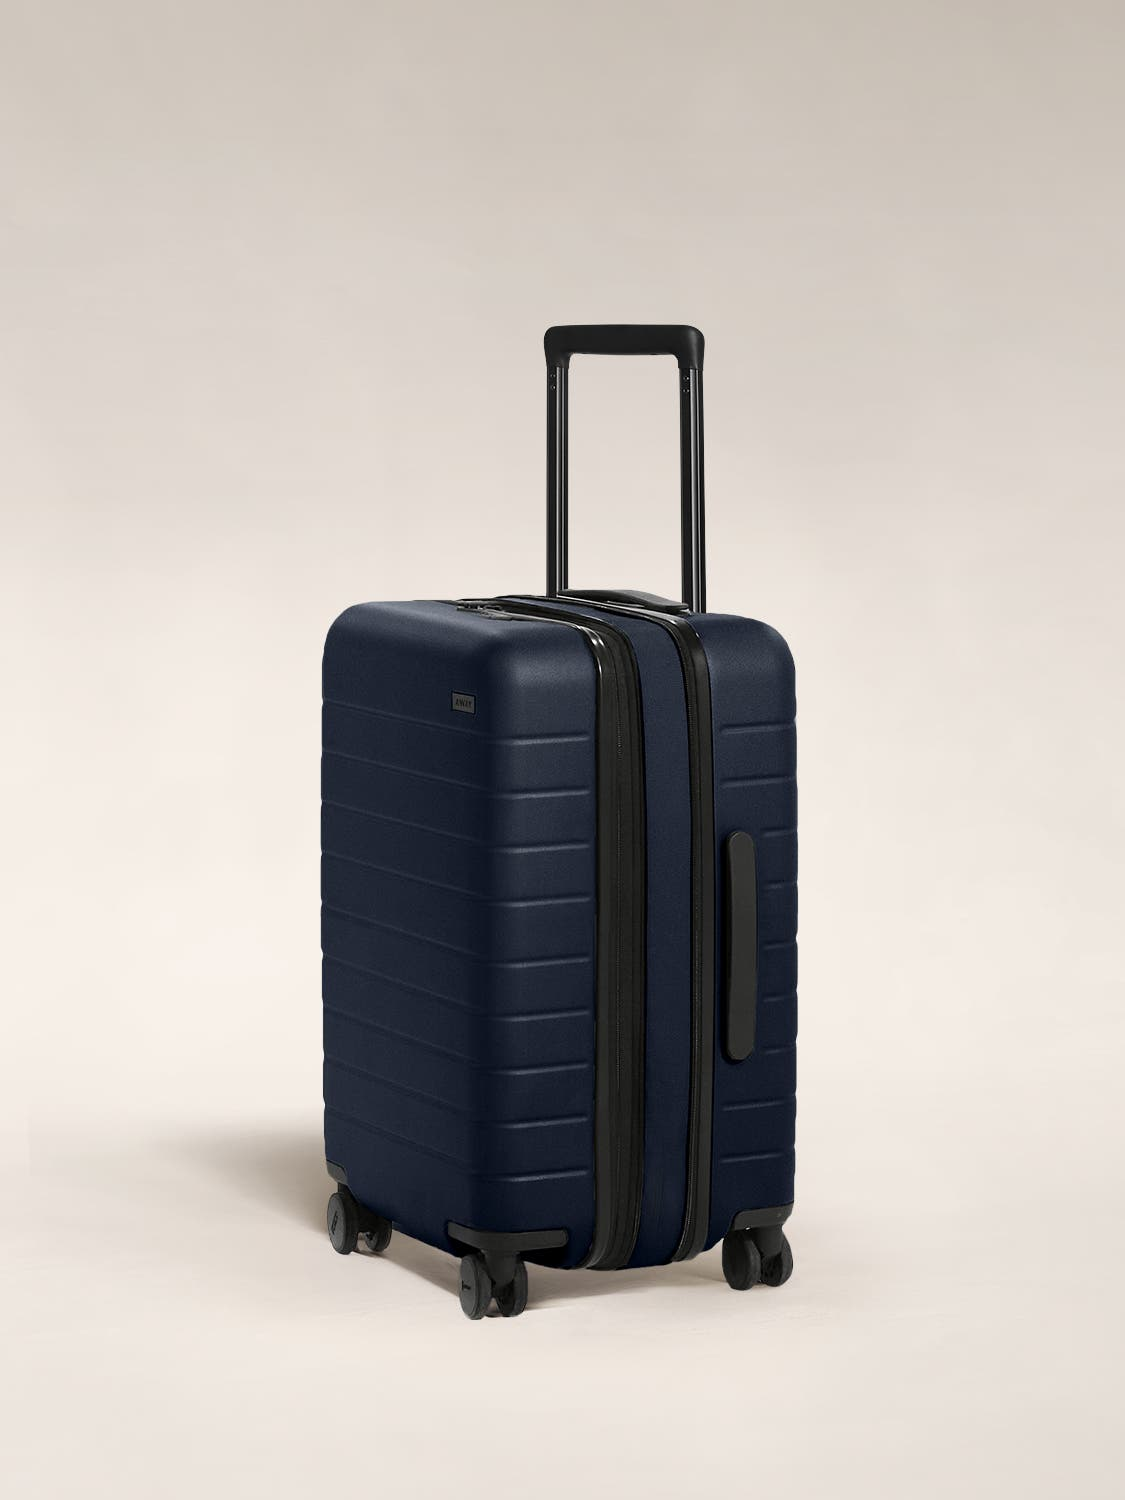 The Carry-On Flex in Navy shown at an angle with raised telescoping handle.